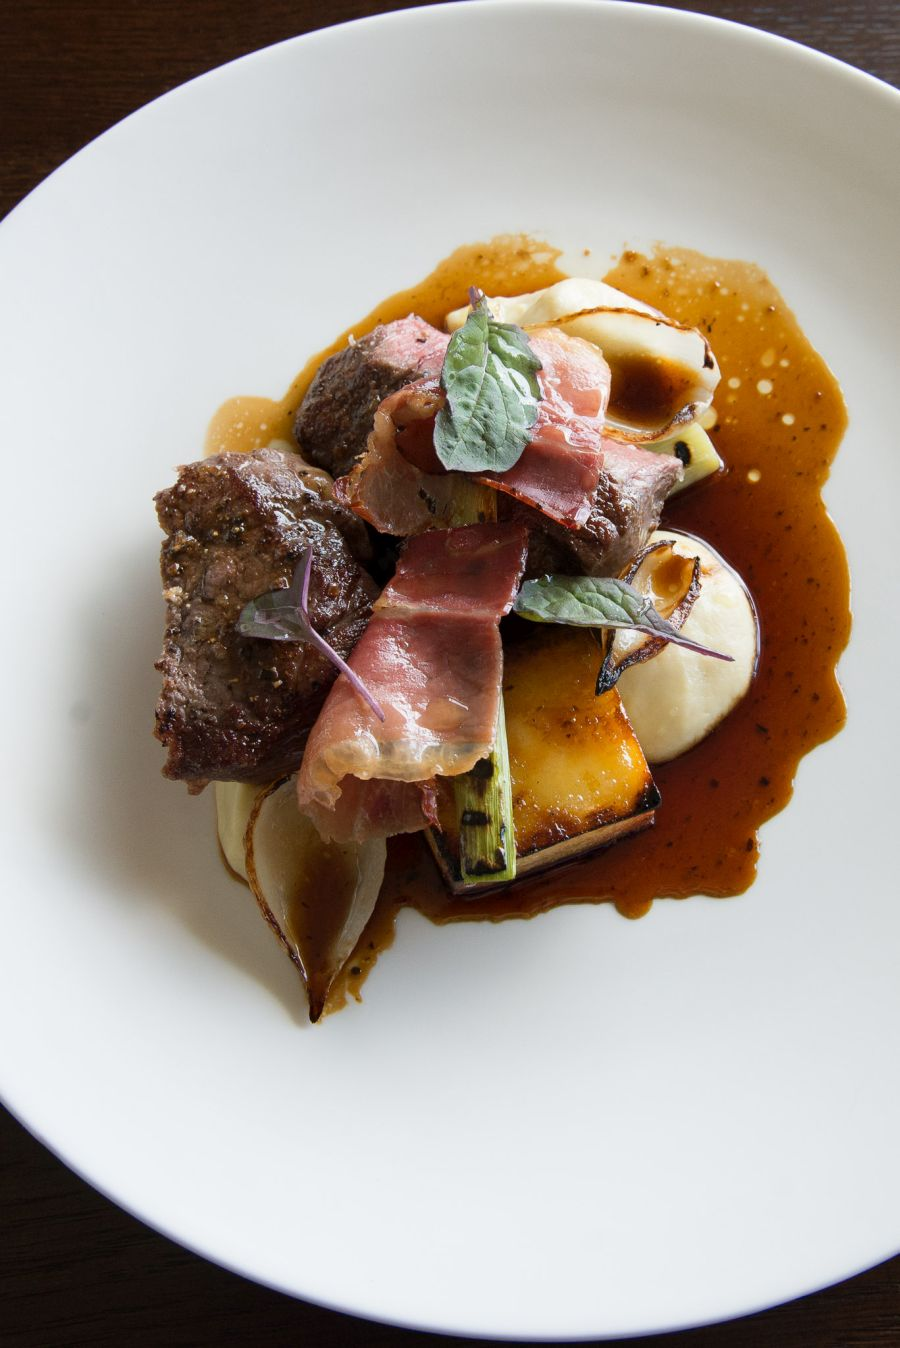 Hawke's Bay rib-eye with onion, leek, speck and truffle jus (NZ$45)